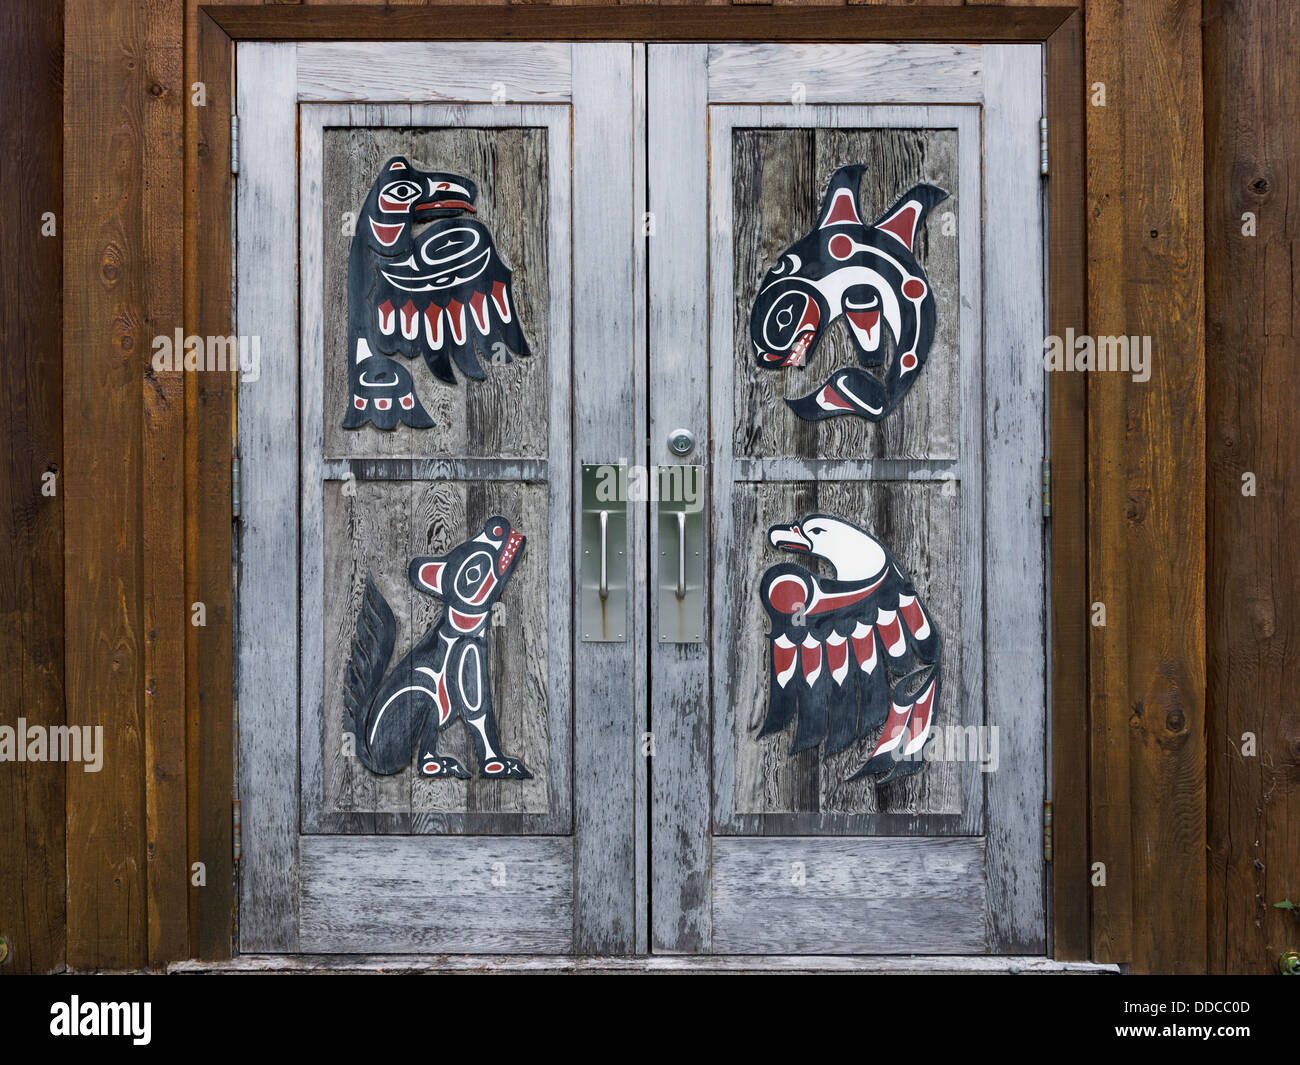 Door to the Klemtu big house containing four totemic figures representing the Klemtu kinship groups. - Stock Image